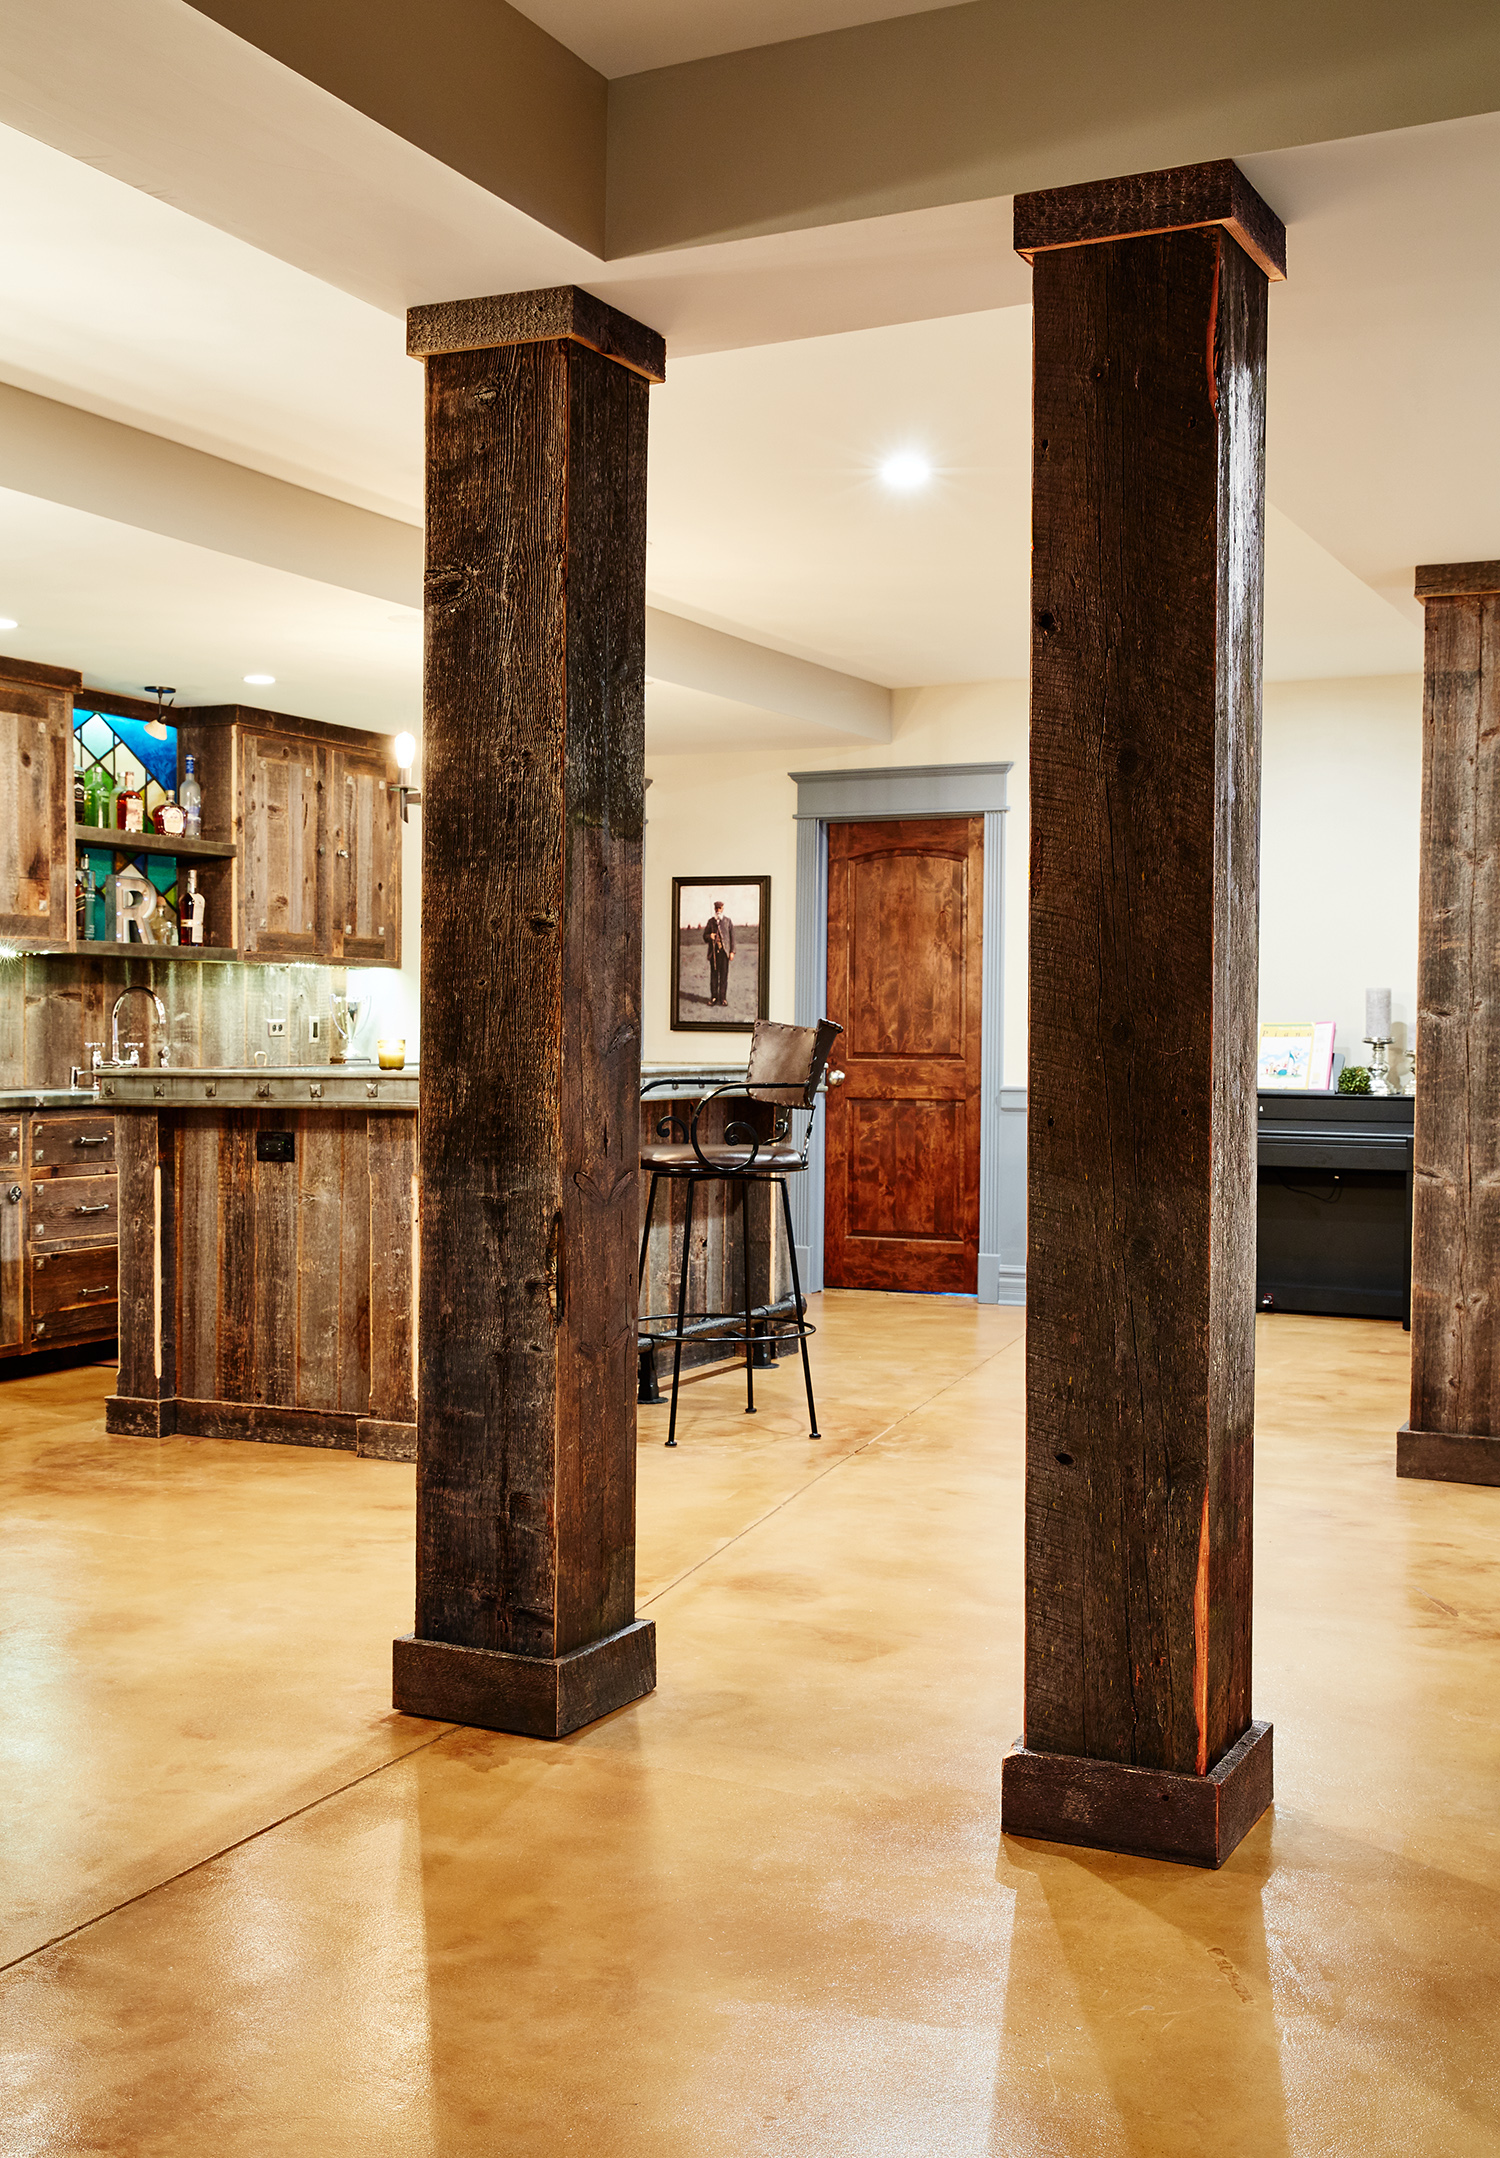 Matching Reclaimed Wood Paneling on Basement Beams